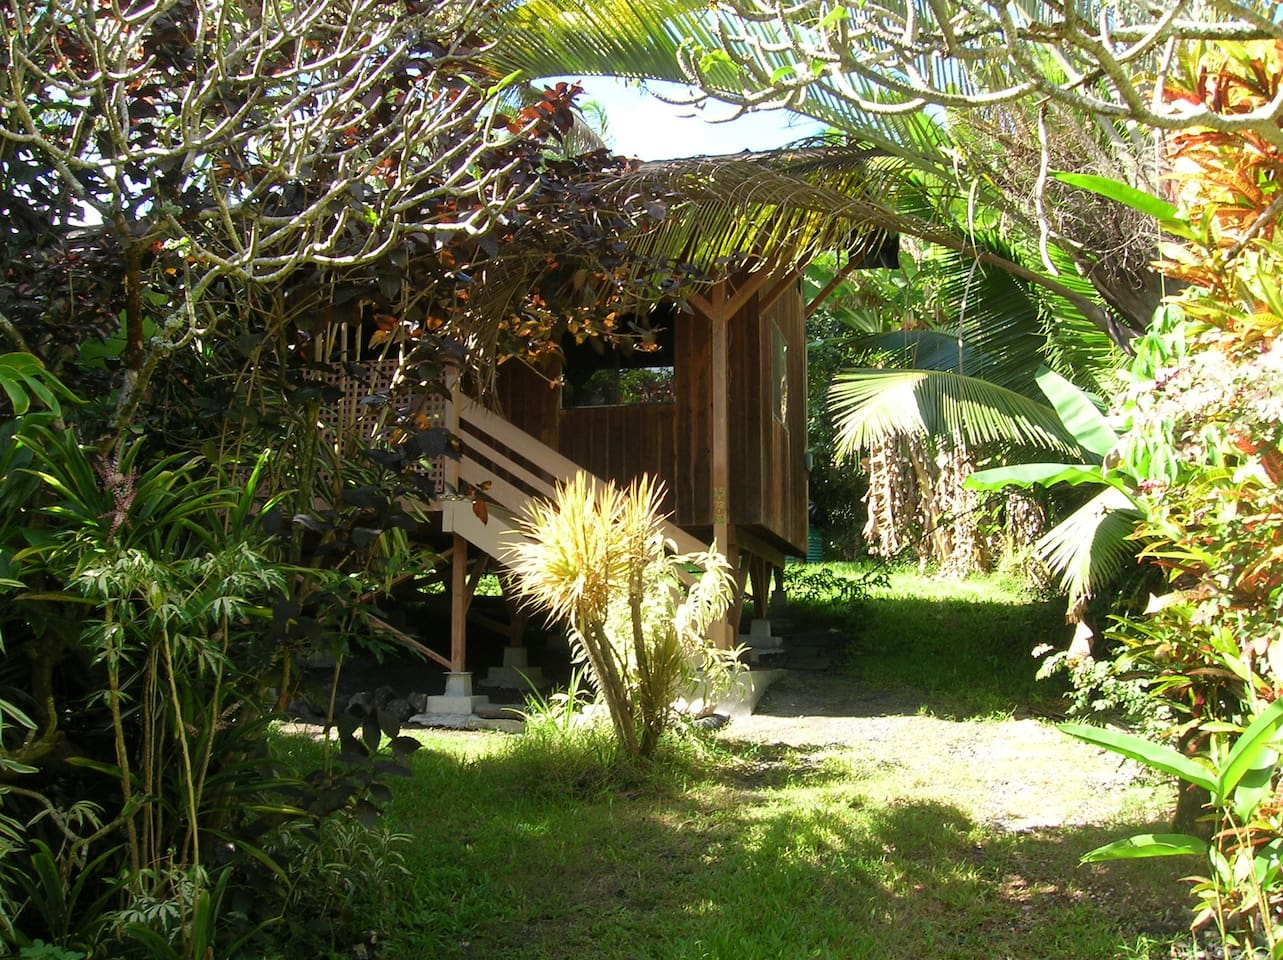 Rustic charm and tropical lushness.